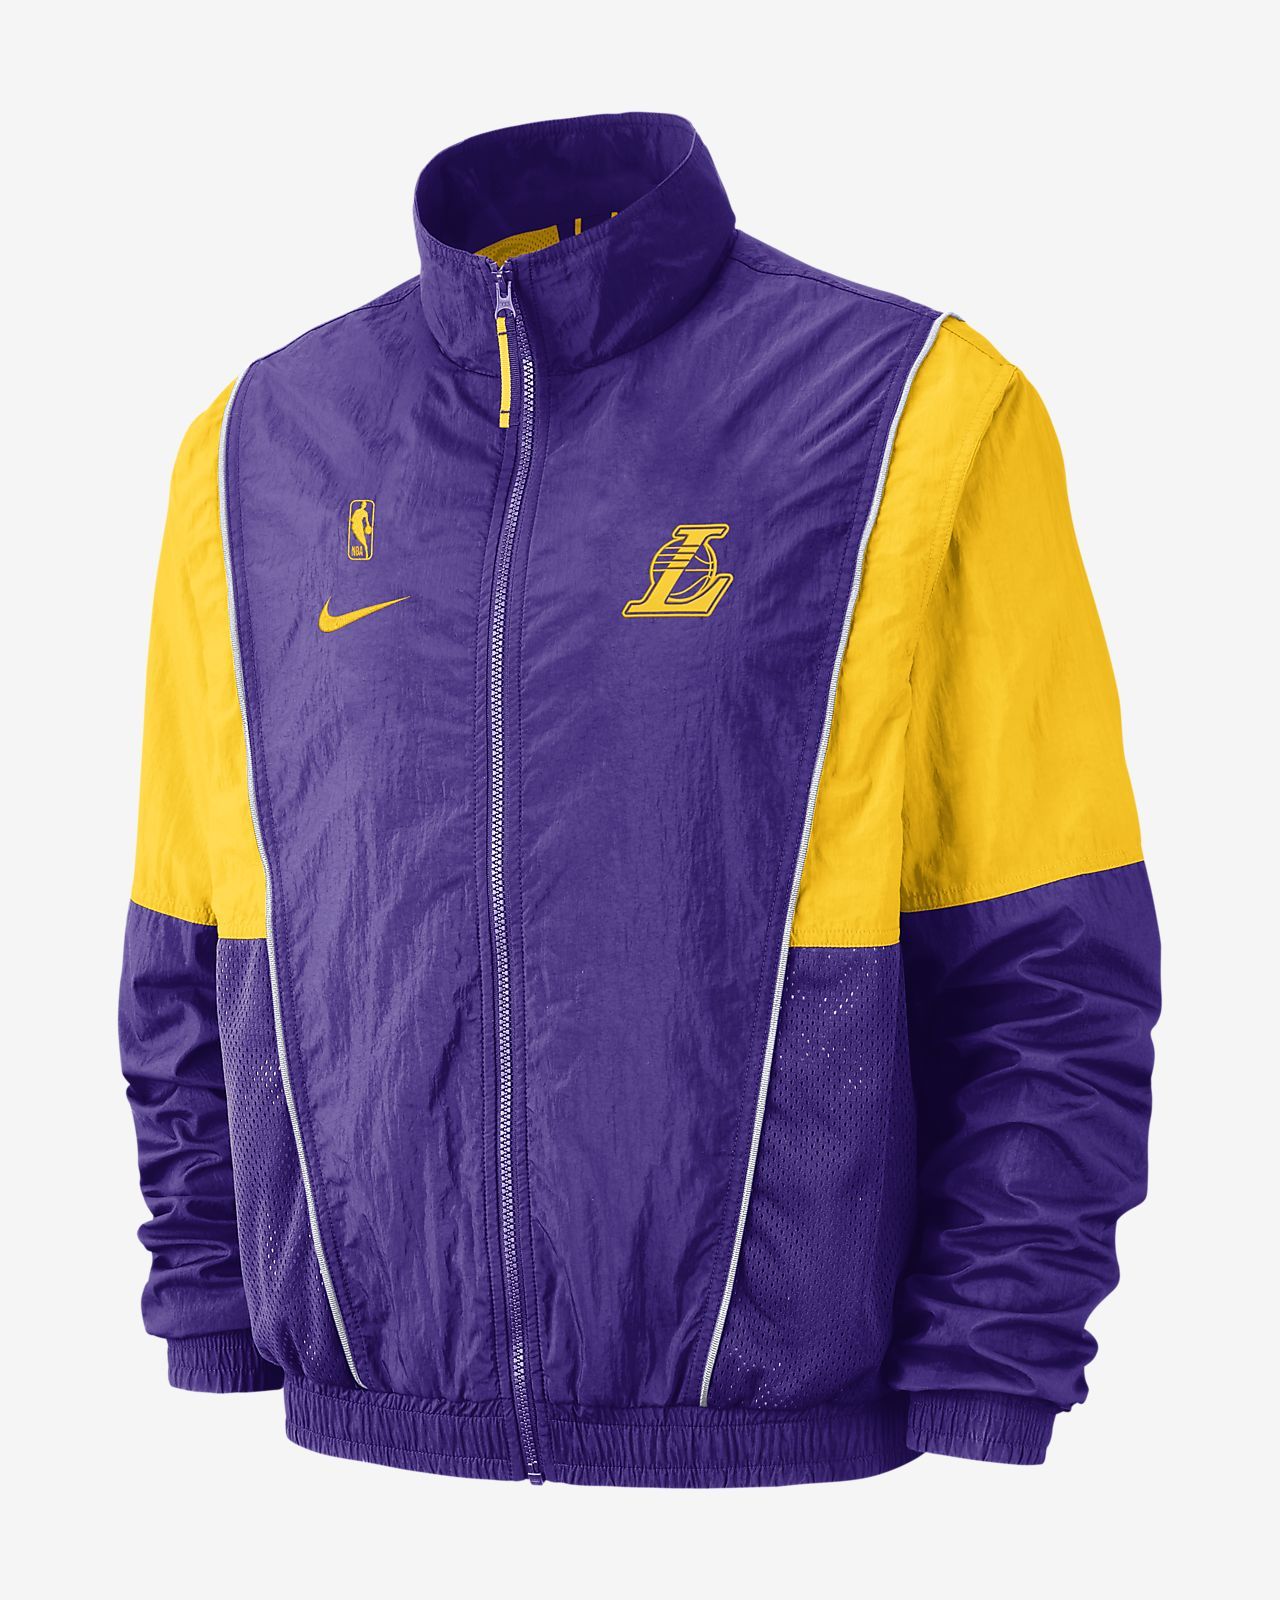 c2c6dac46 Los Angeles Lakers Nike Men s NBA Tracksuit Jacket. Nike.com